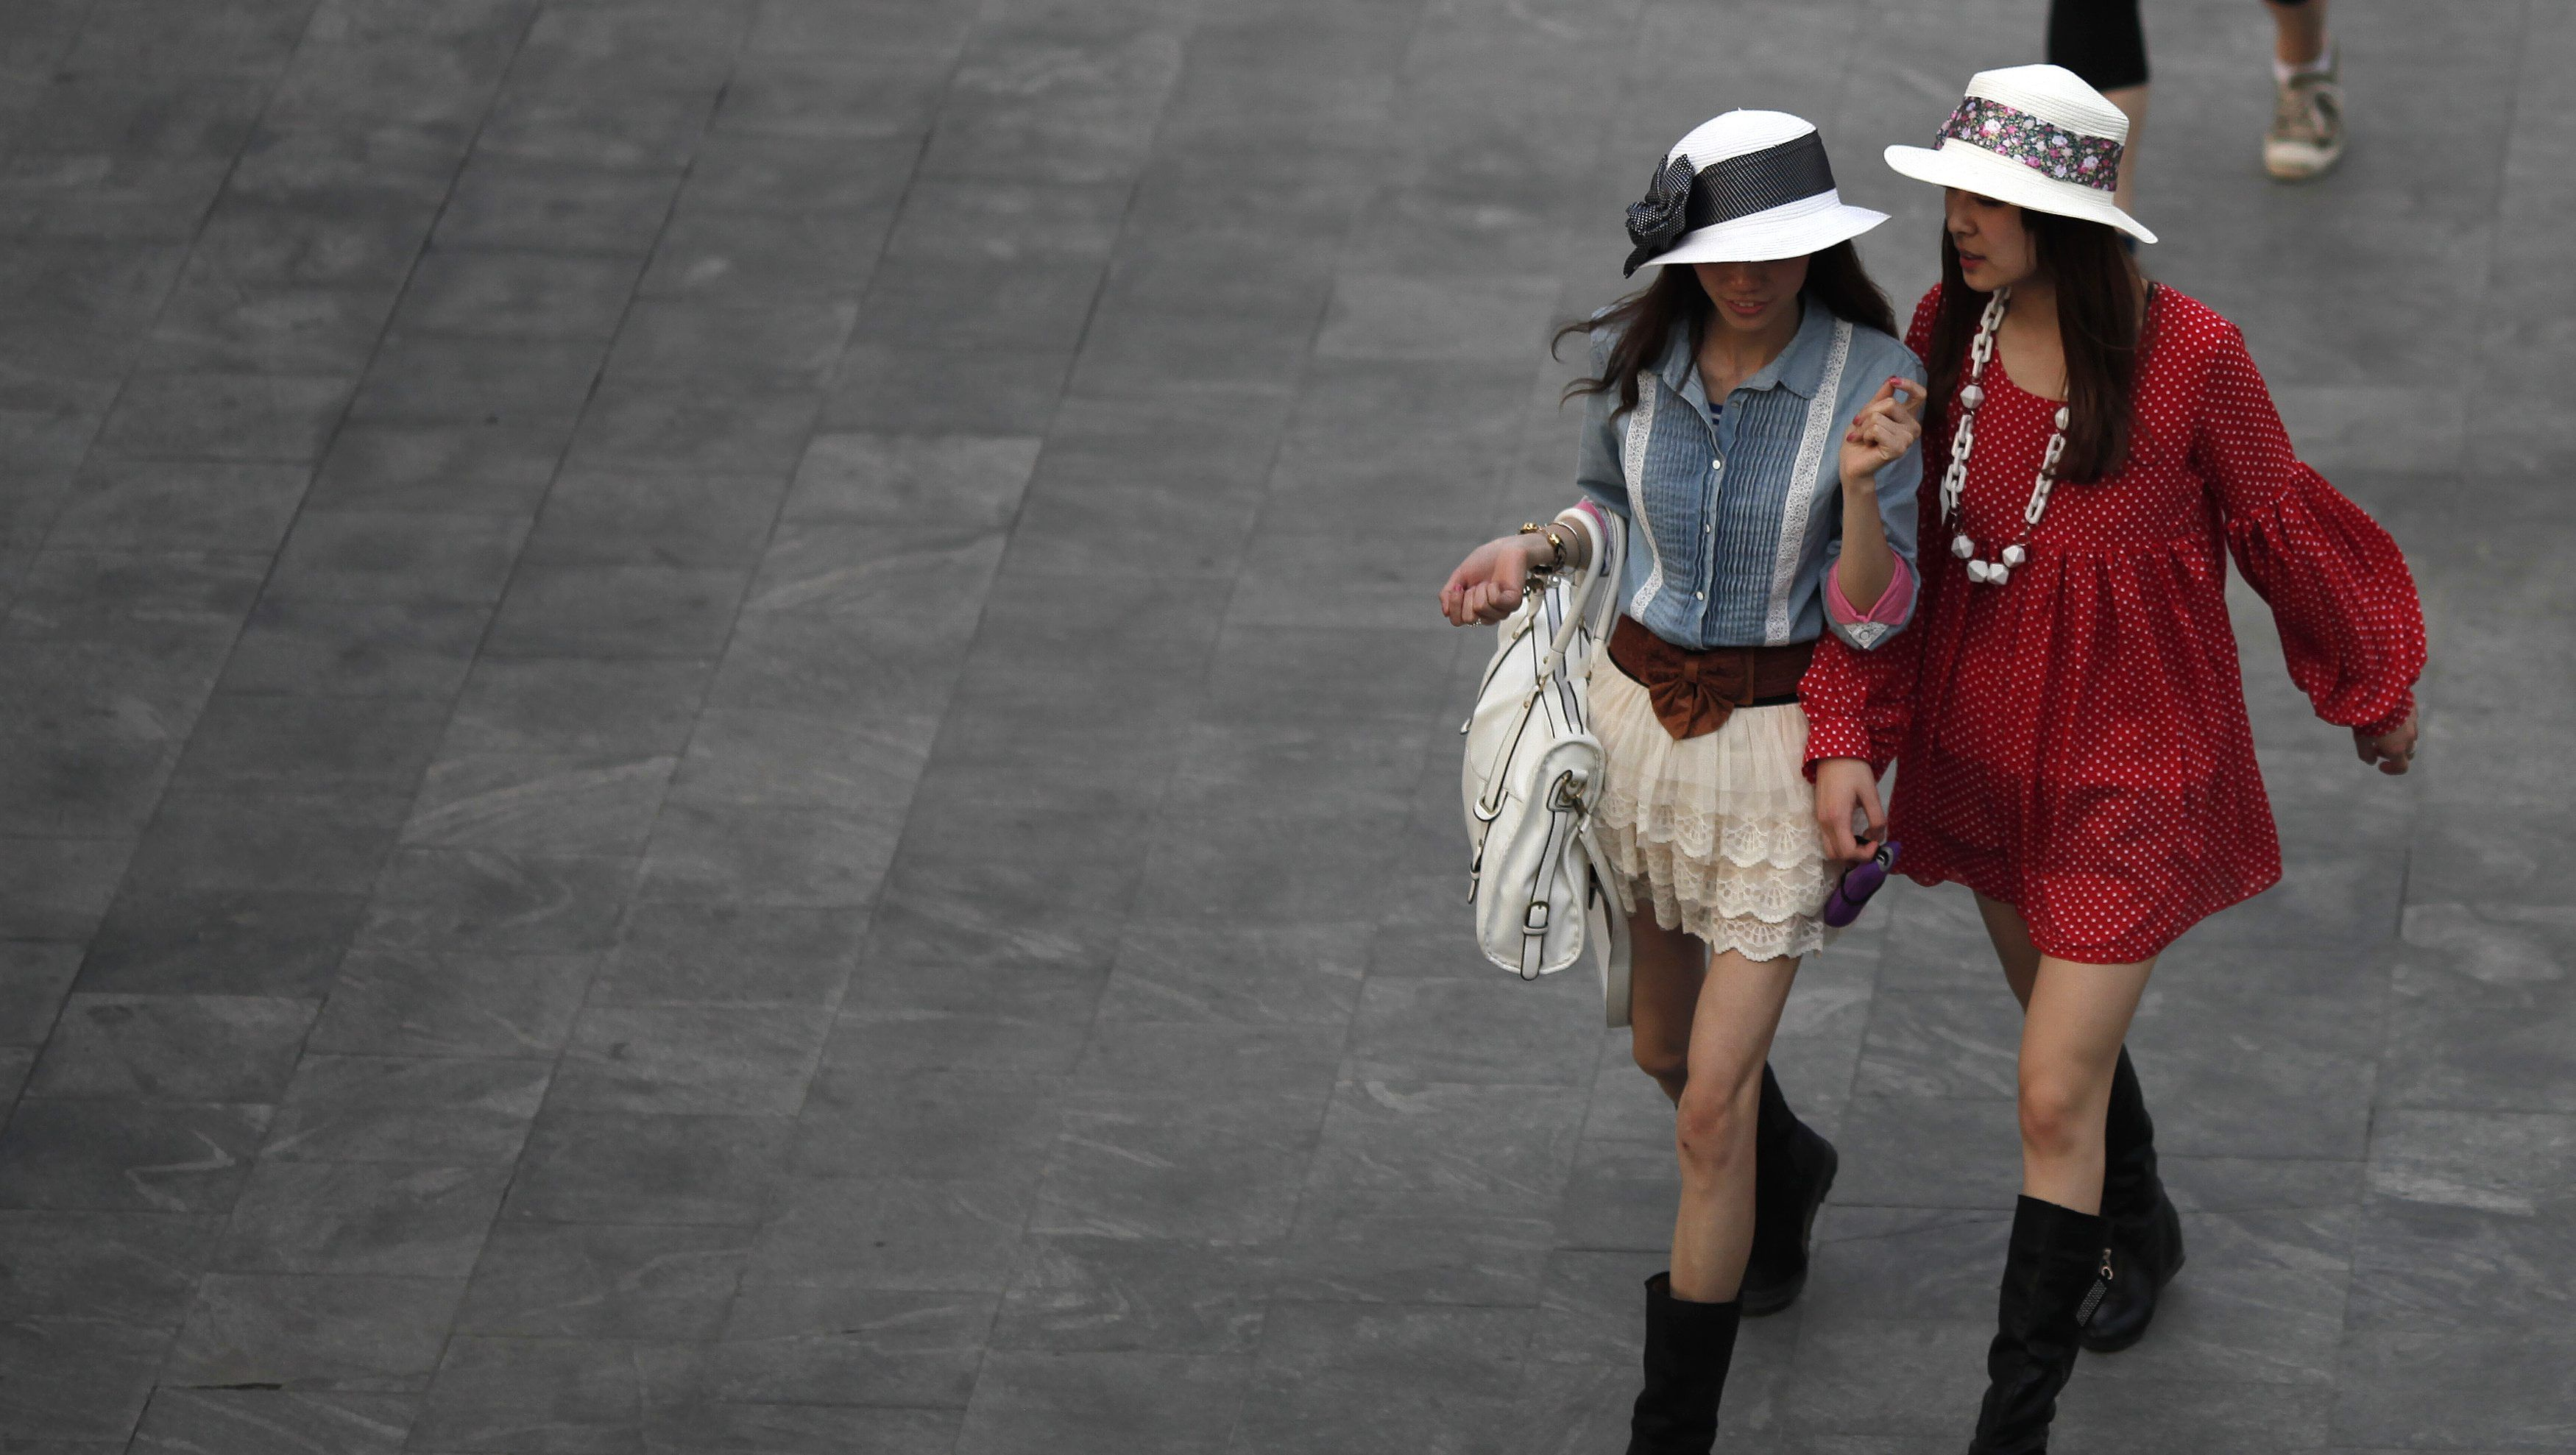 Women travel in a financial area of Pudong in Shanghai Apr 26, 2011.